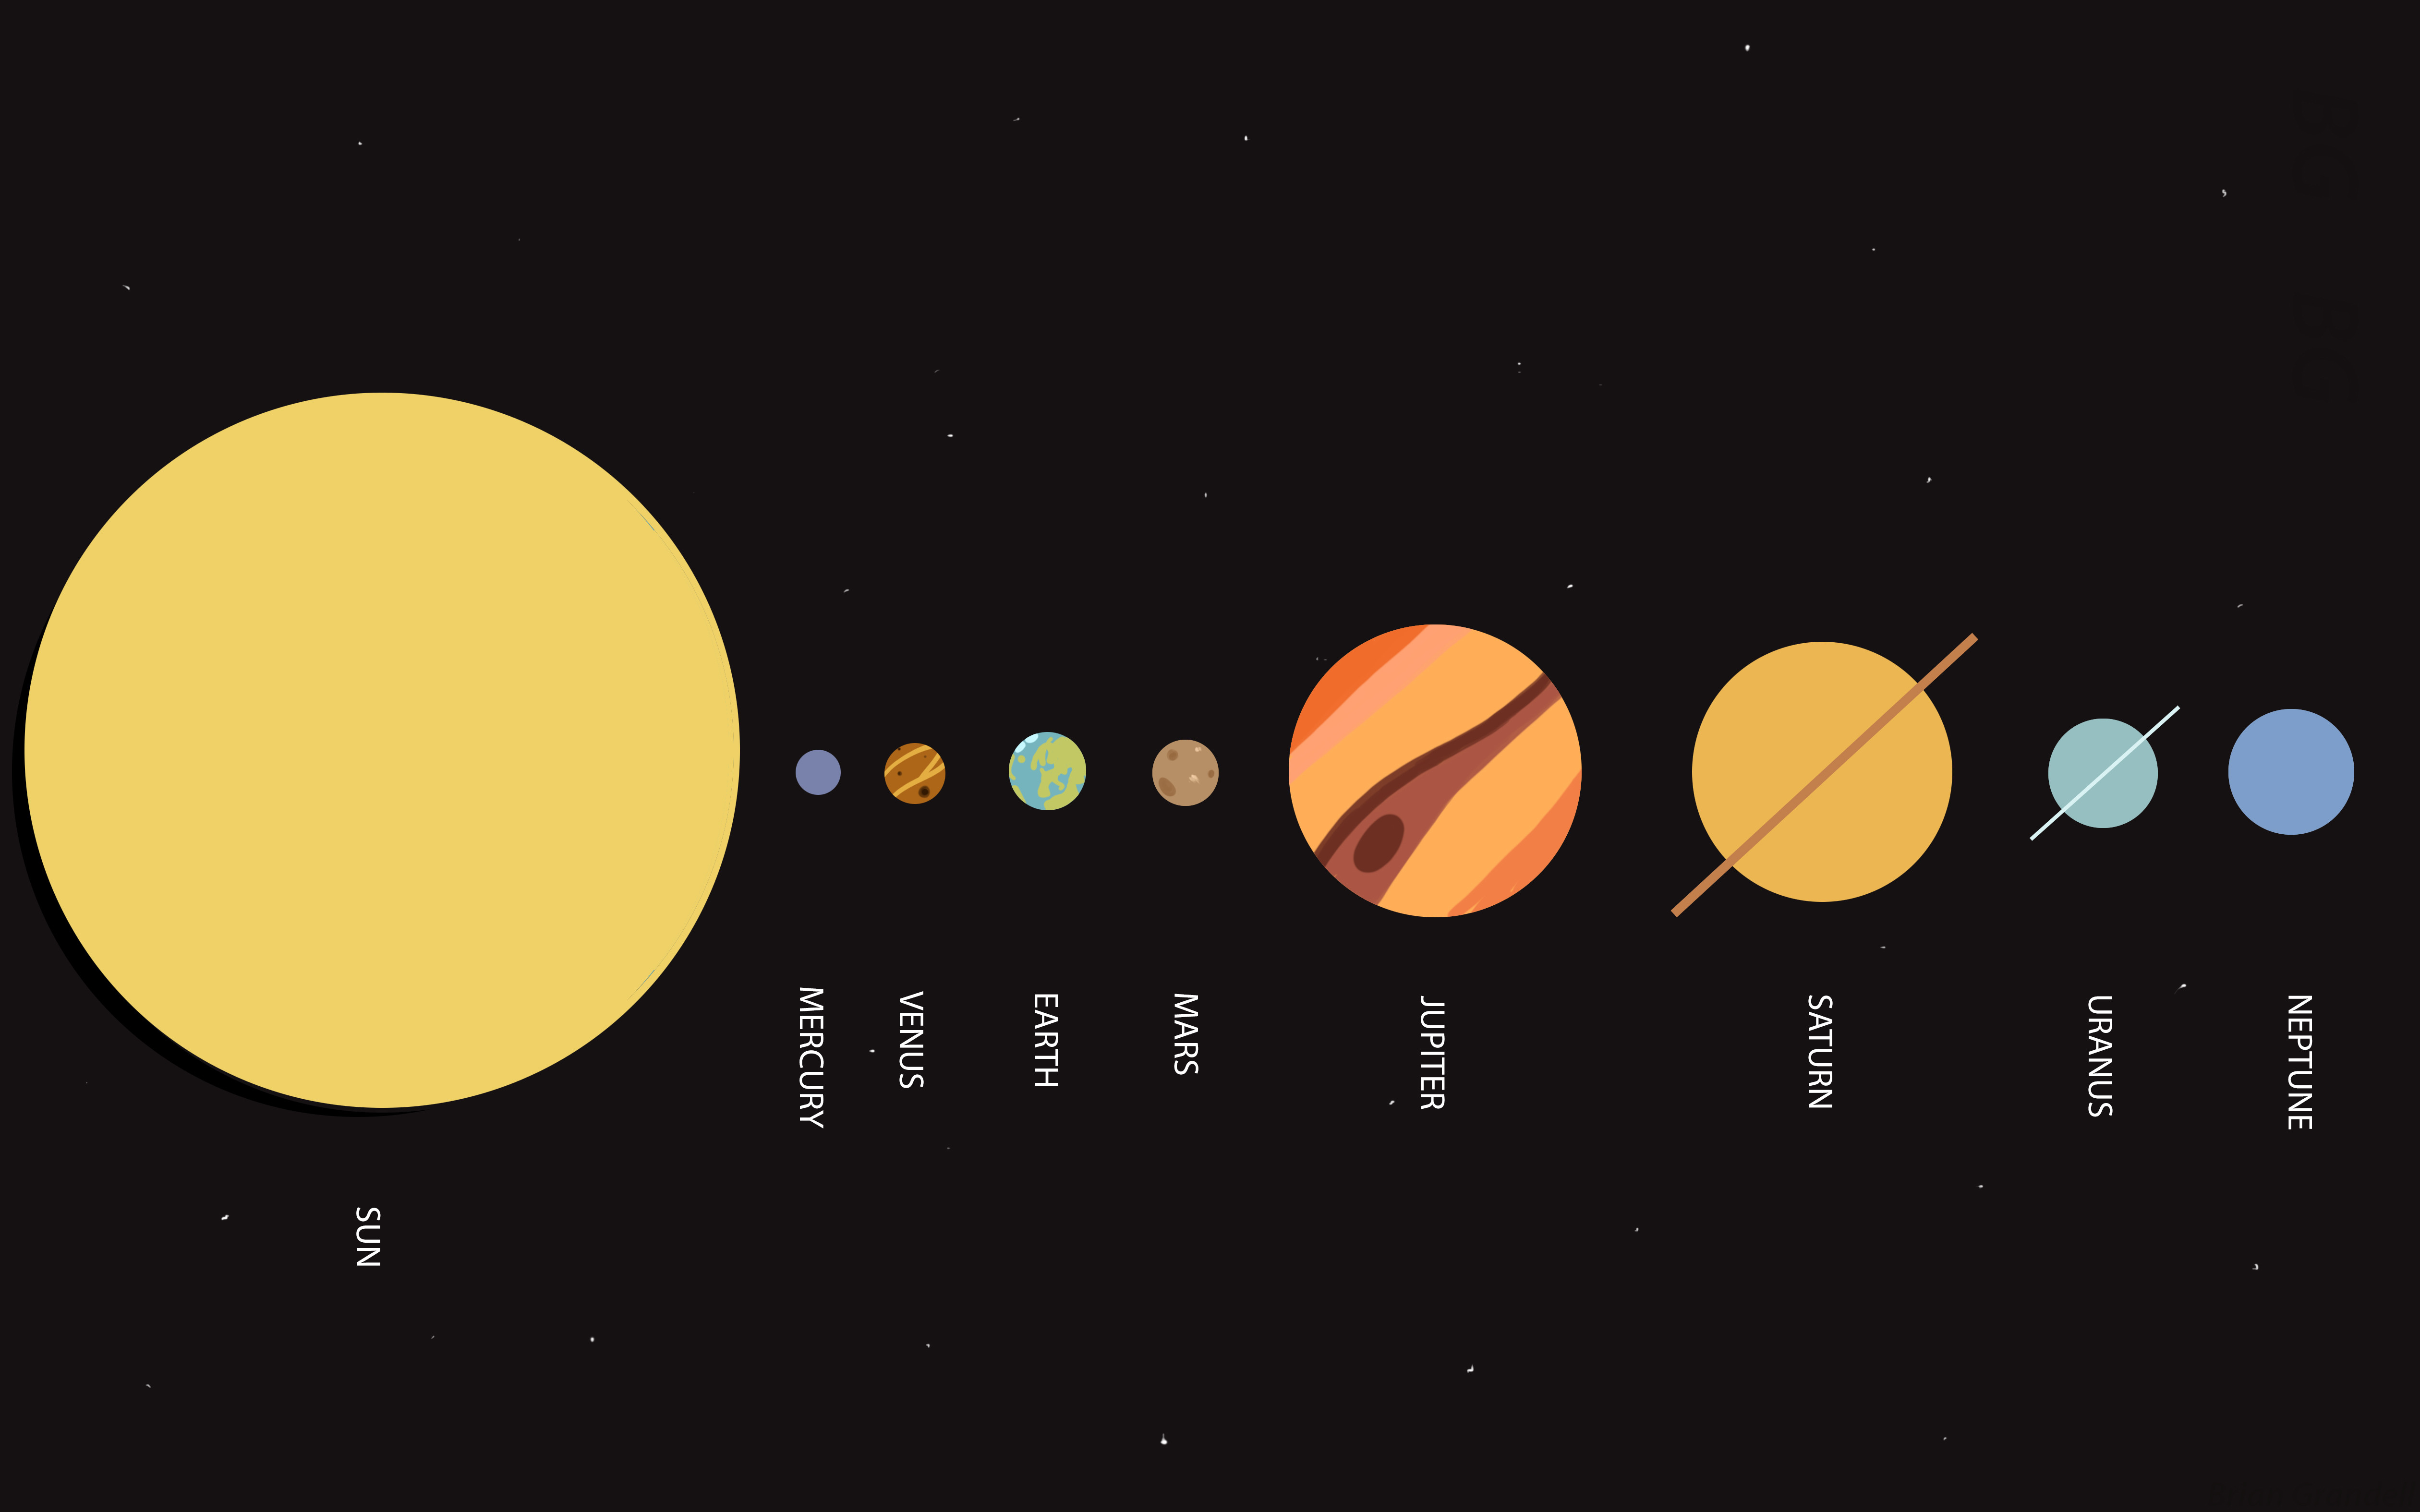 5040x3150 - Solar System Wallpapers 21